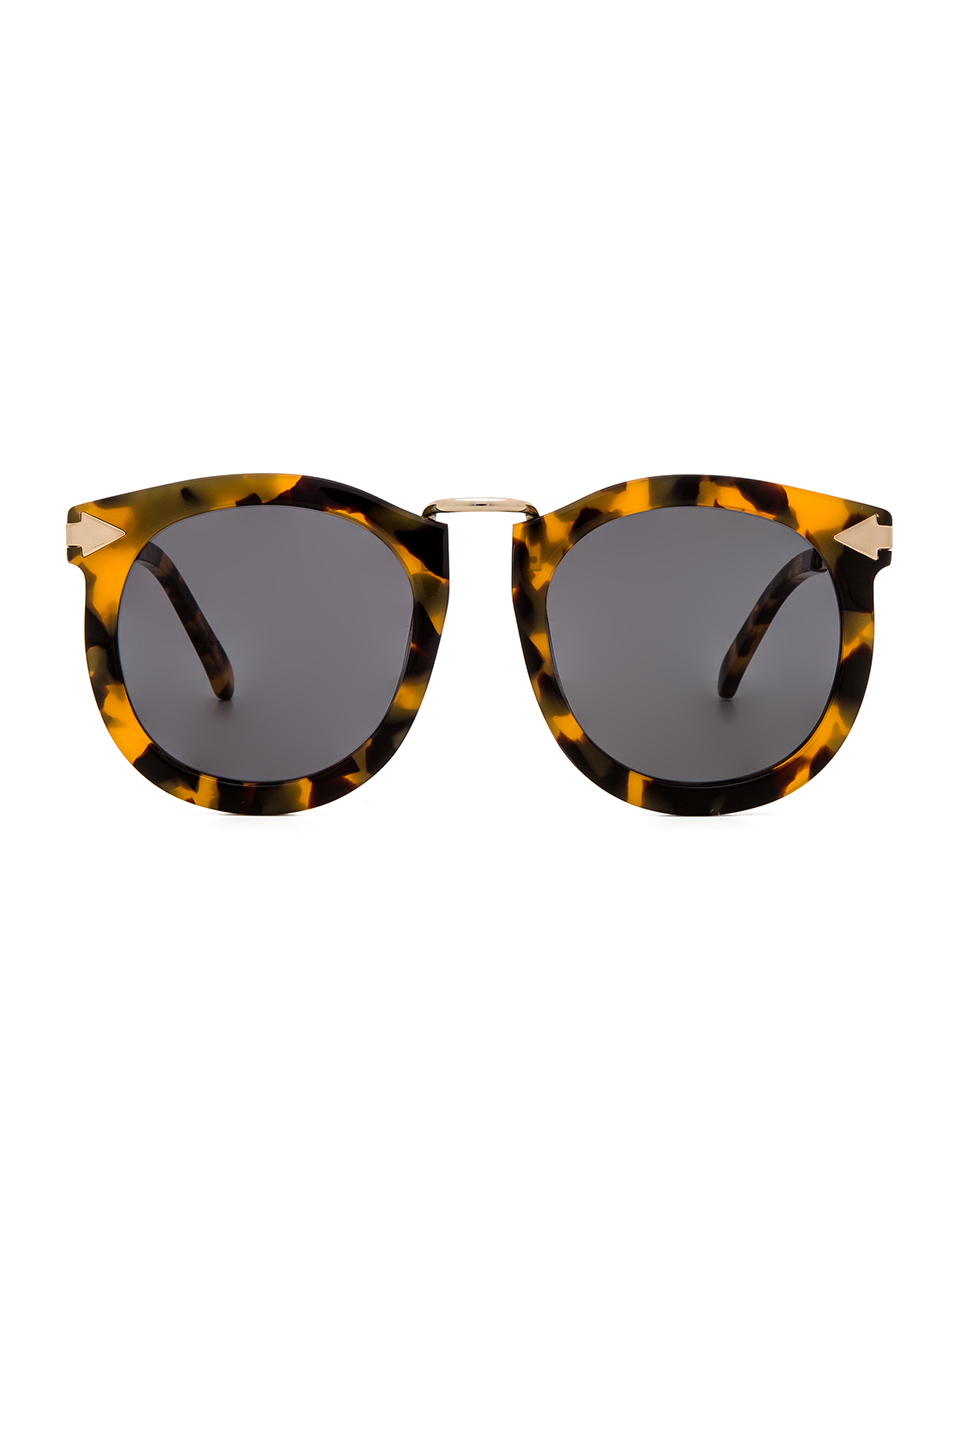 Karen Walker SUPER LUNAR 太阳镜